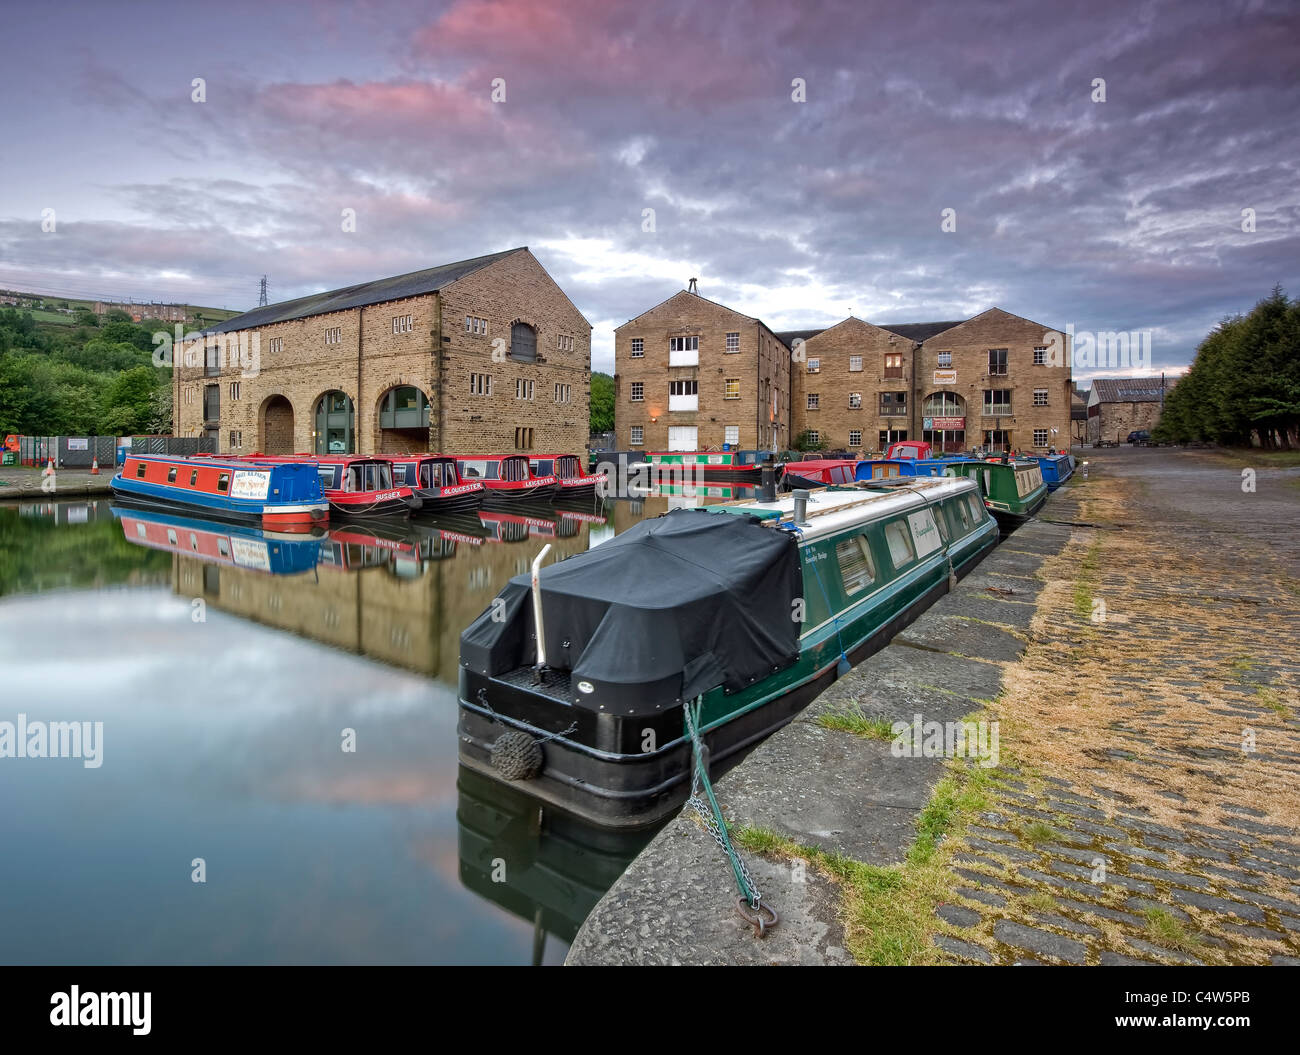 narrowboats at sowerby bridge moorings - Stock Image